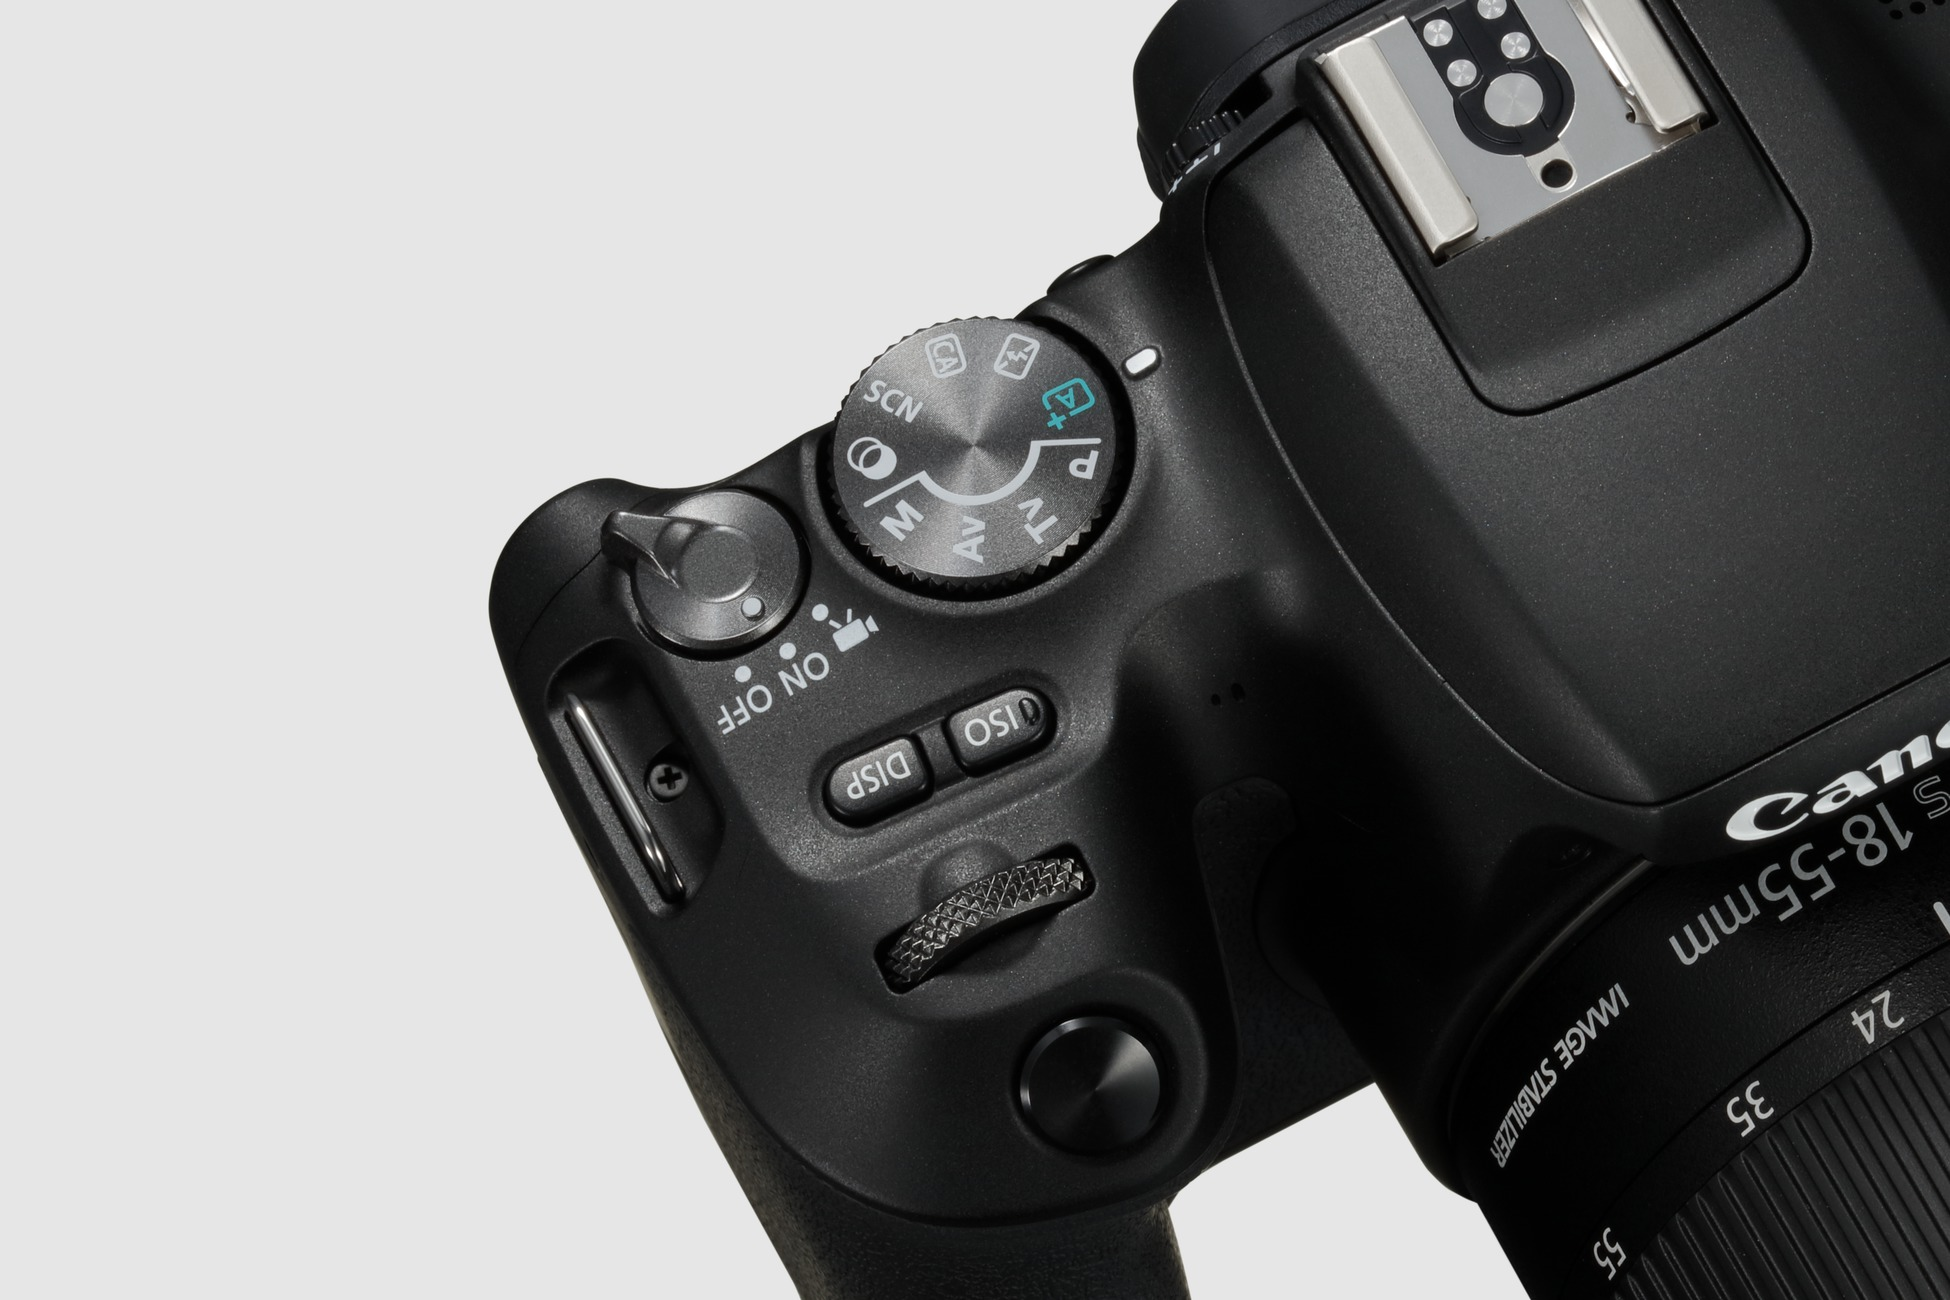 Canon Reveals The Eos 200d As Its Latest Lightweight Dslr Amateur 100d Kit 18 55 Is Stm 100 D Theres Also A Built In Flash With Guide Number Of 98 And Those Who Require Bit More Power Can Always Attach One Canons Speedlite Ex Series Via